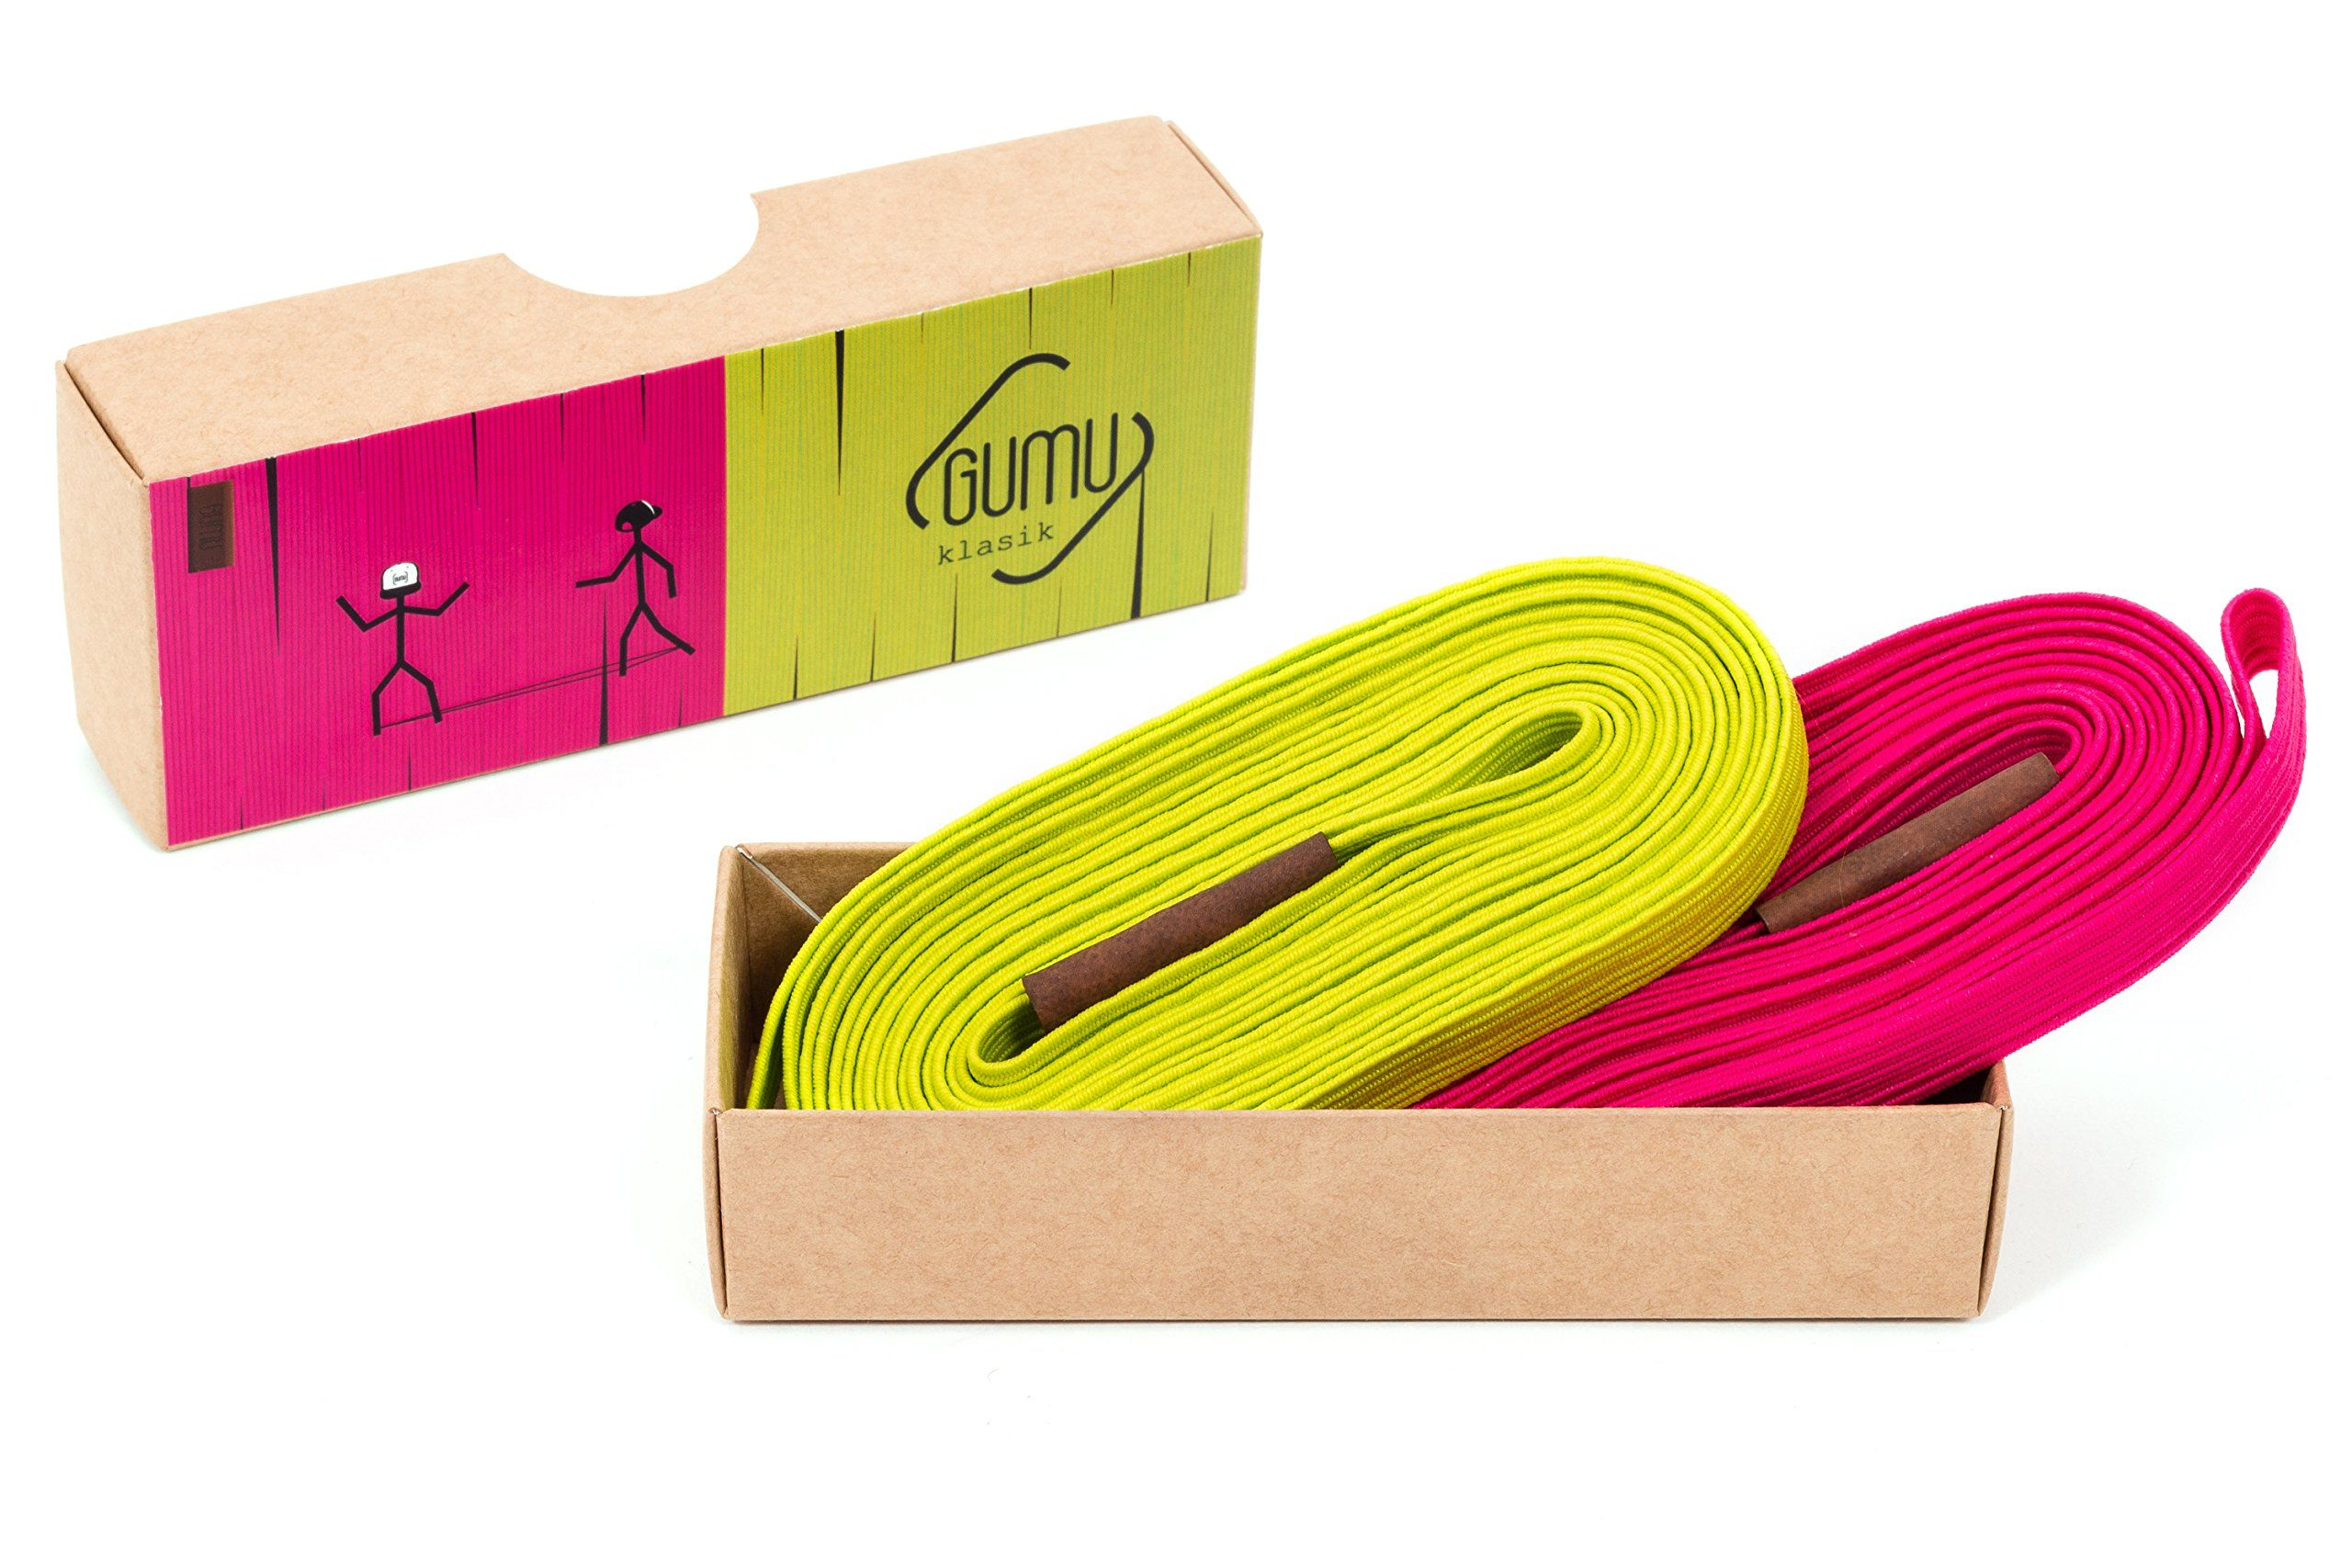 Gumu Chinese Jump Rope Klasik 11 Feet Pack Of 2 Colored Chinese Jump Ropes For Kids And Adults Durable Highly Elasti Chinese Jump Rope Elastic Jump Rope